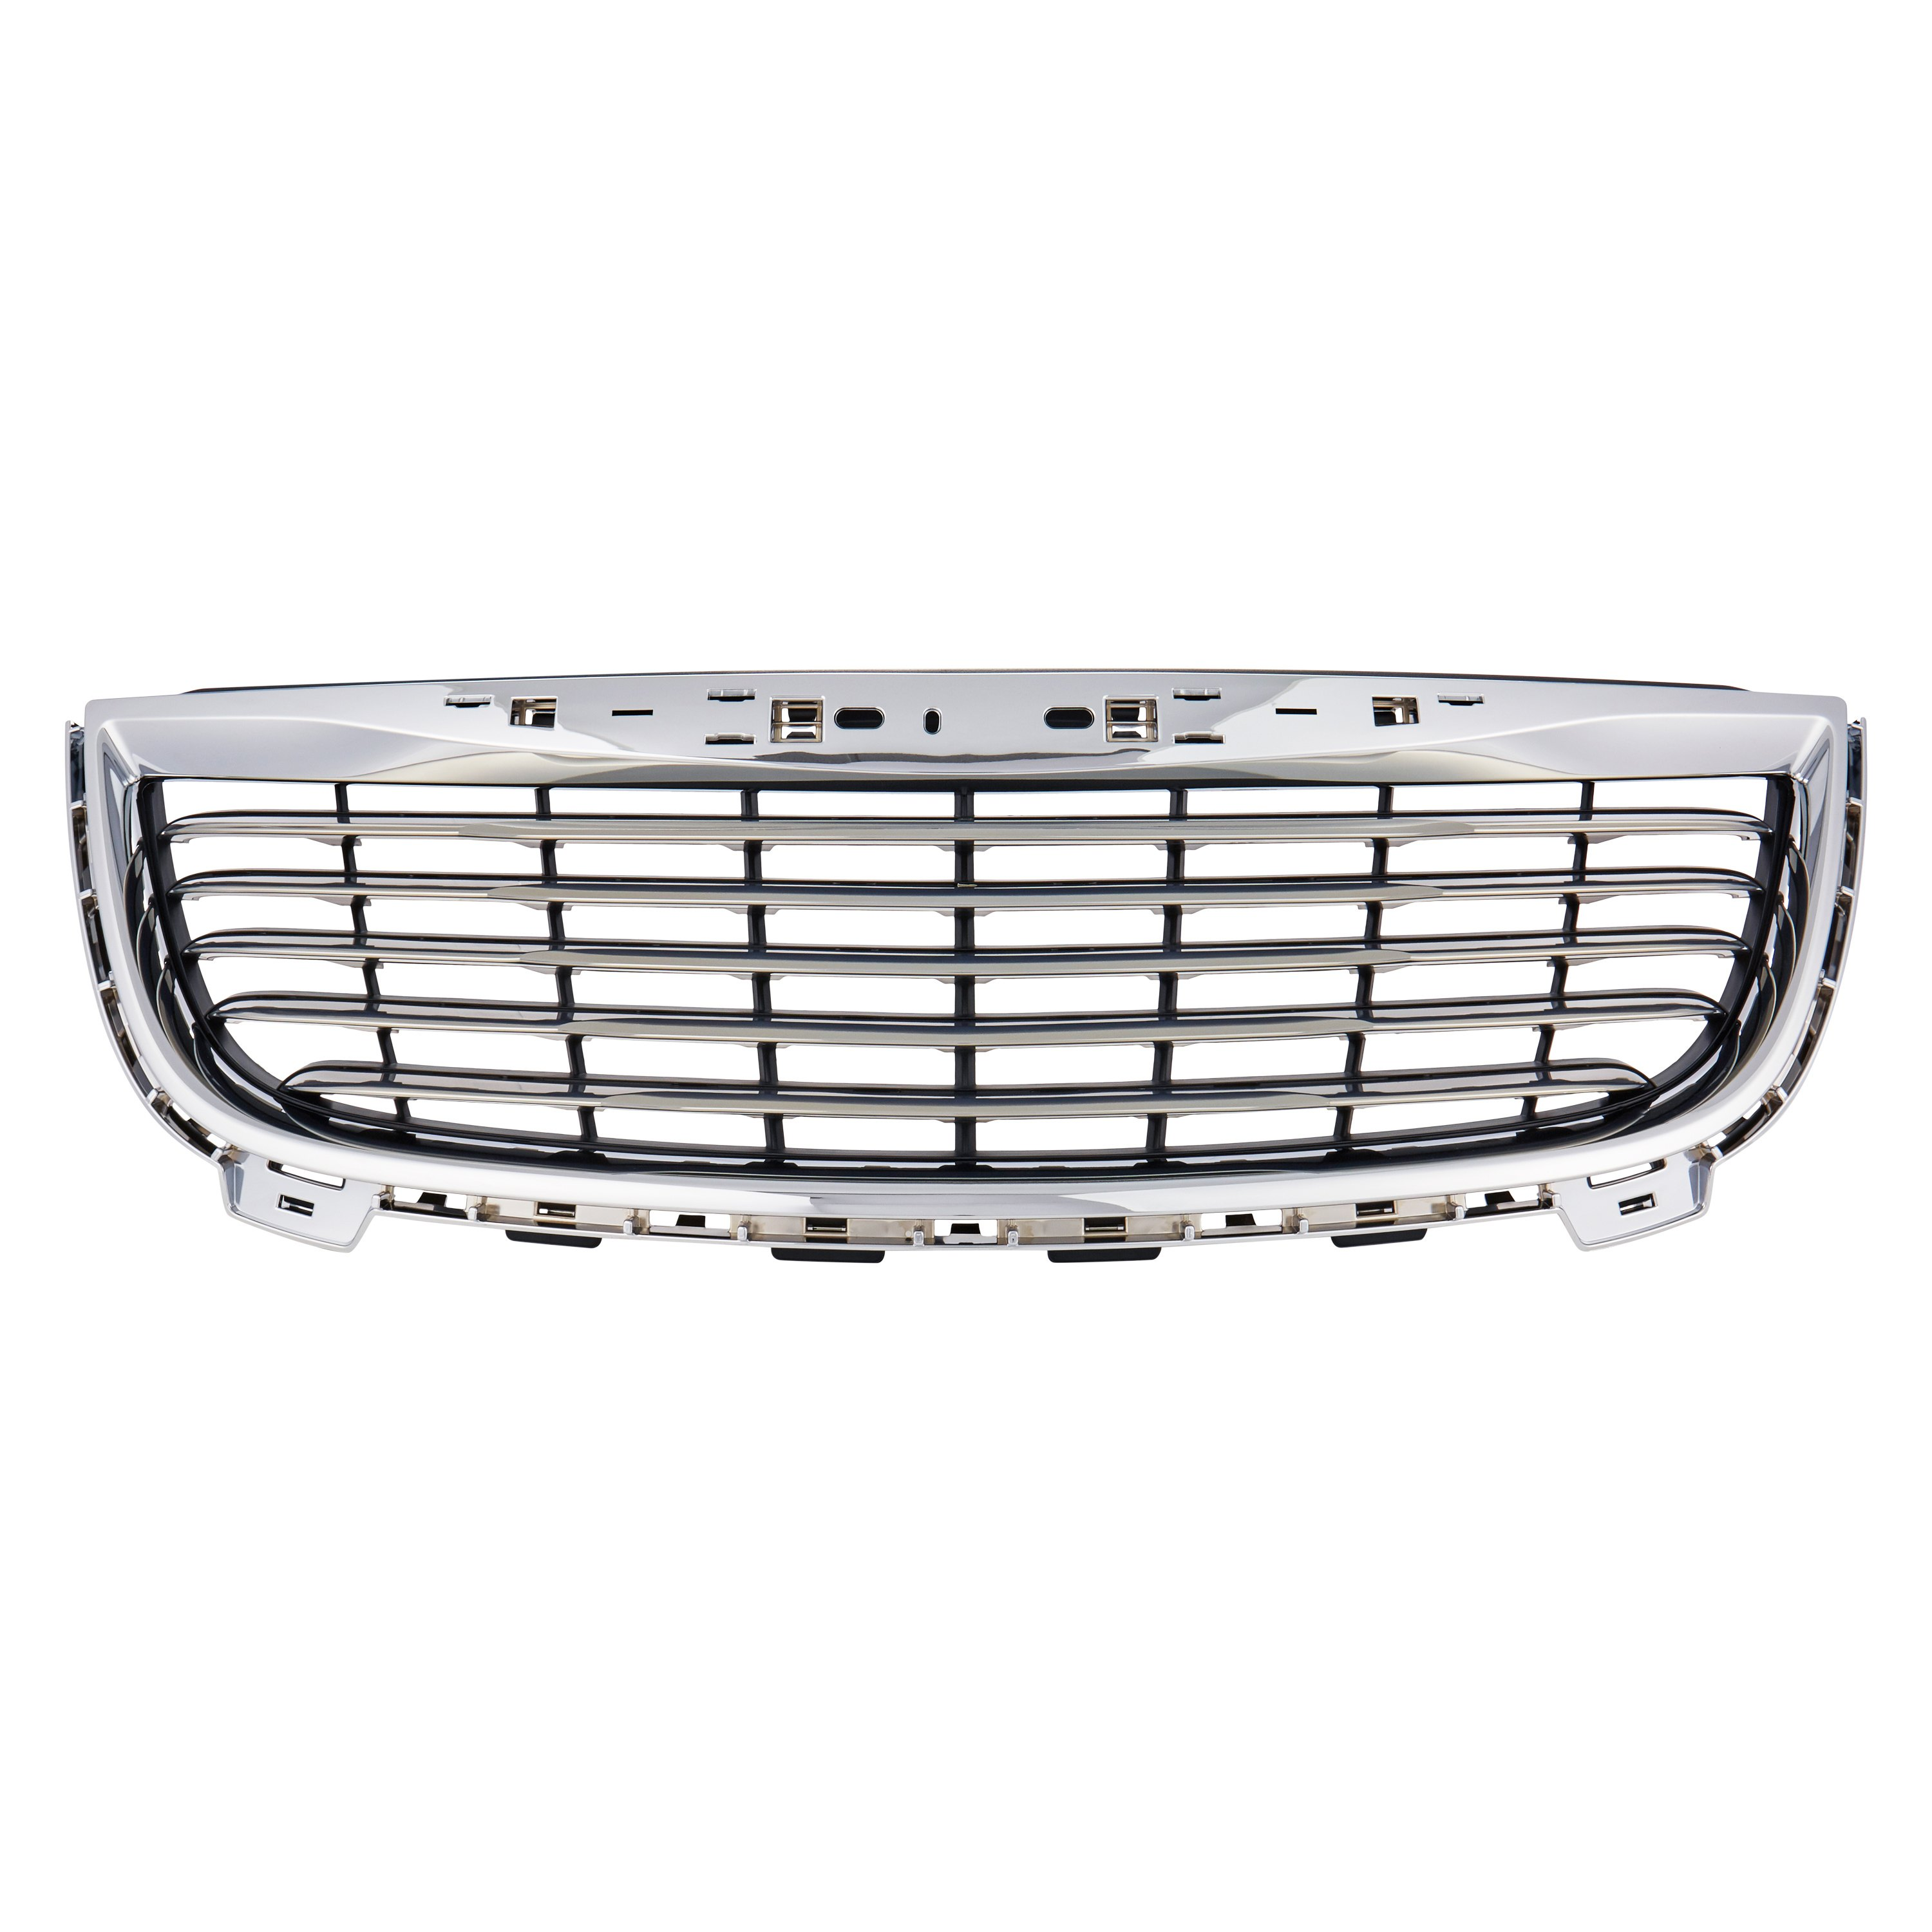 For Chrysler Town & Country 2011-2016 Replace Grille